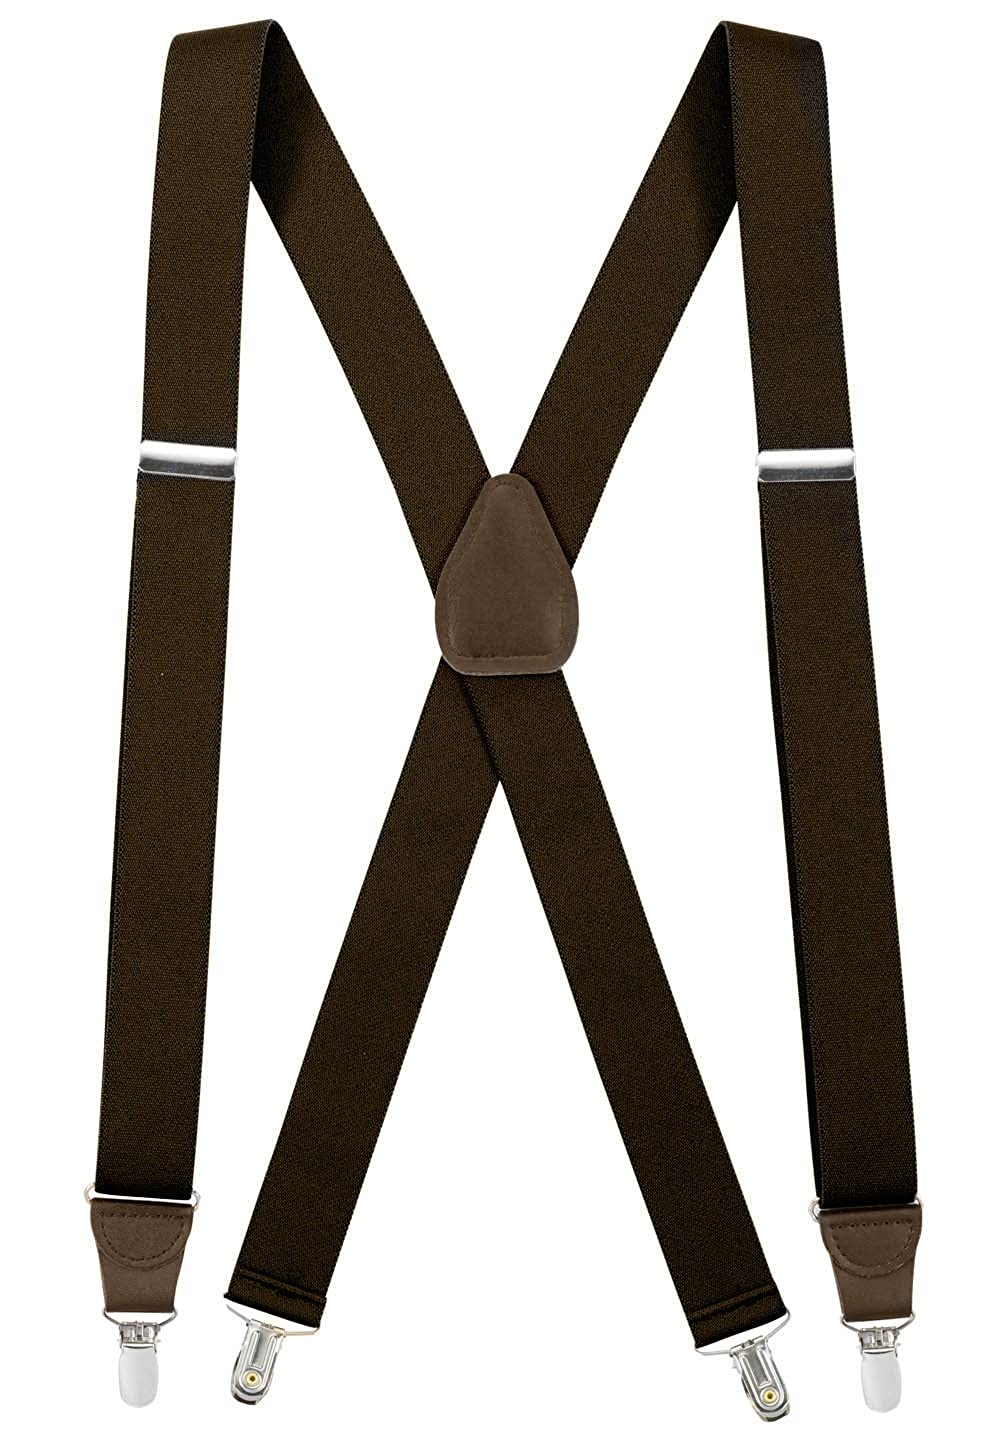 HoldEm Suspender for Men X-Back Clip on Leather Crosspatch Made in USA